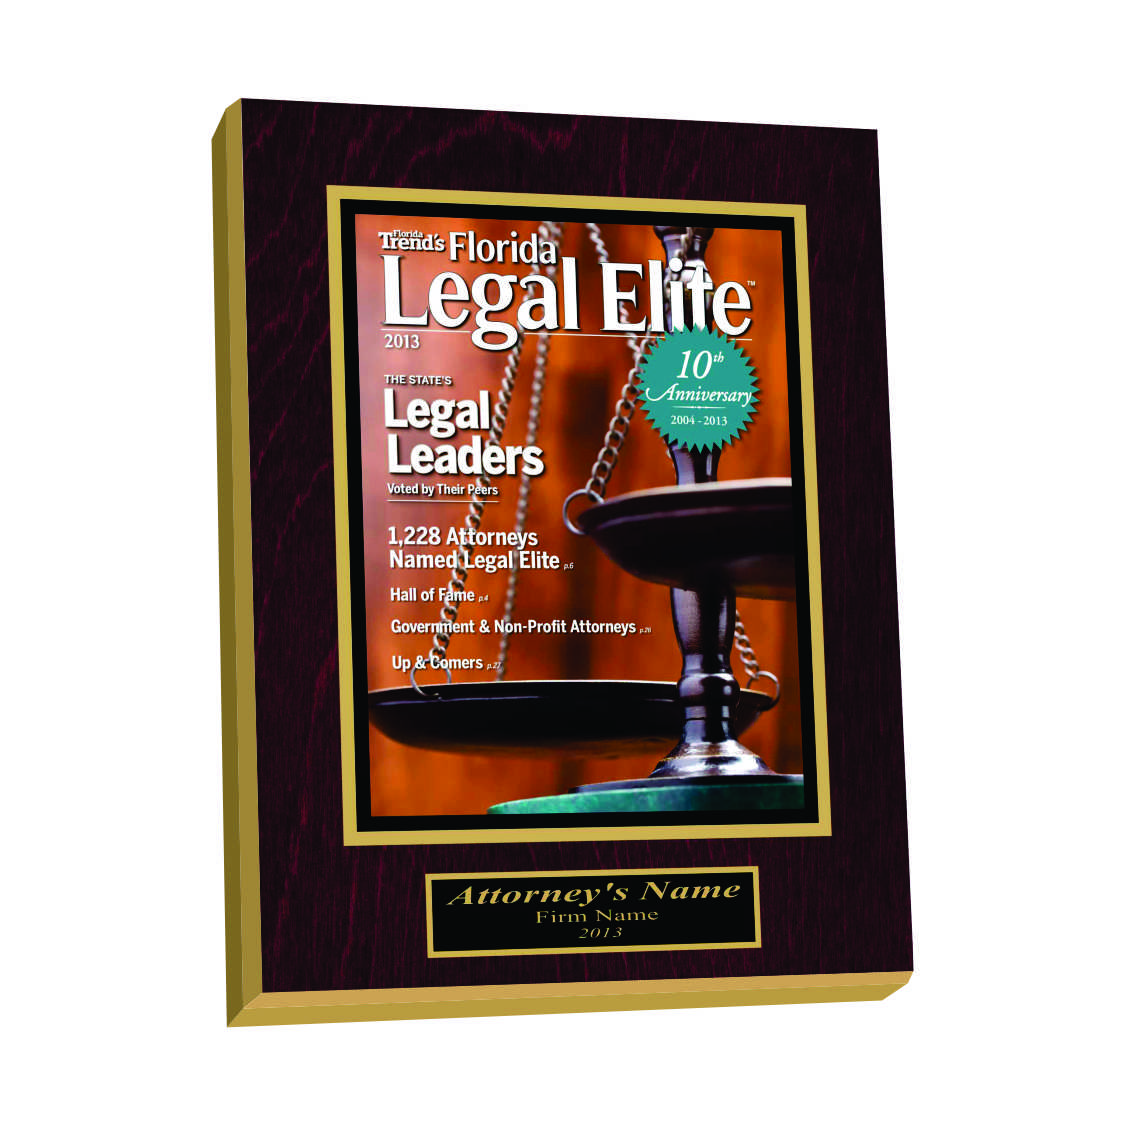 Wood plaques are elegant and classic displays for your achievements, perfect for a formal office setting.